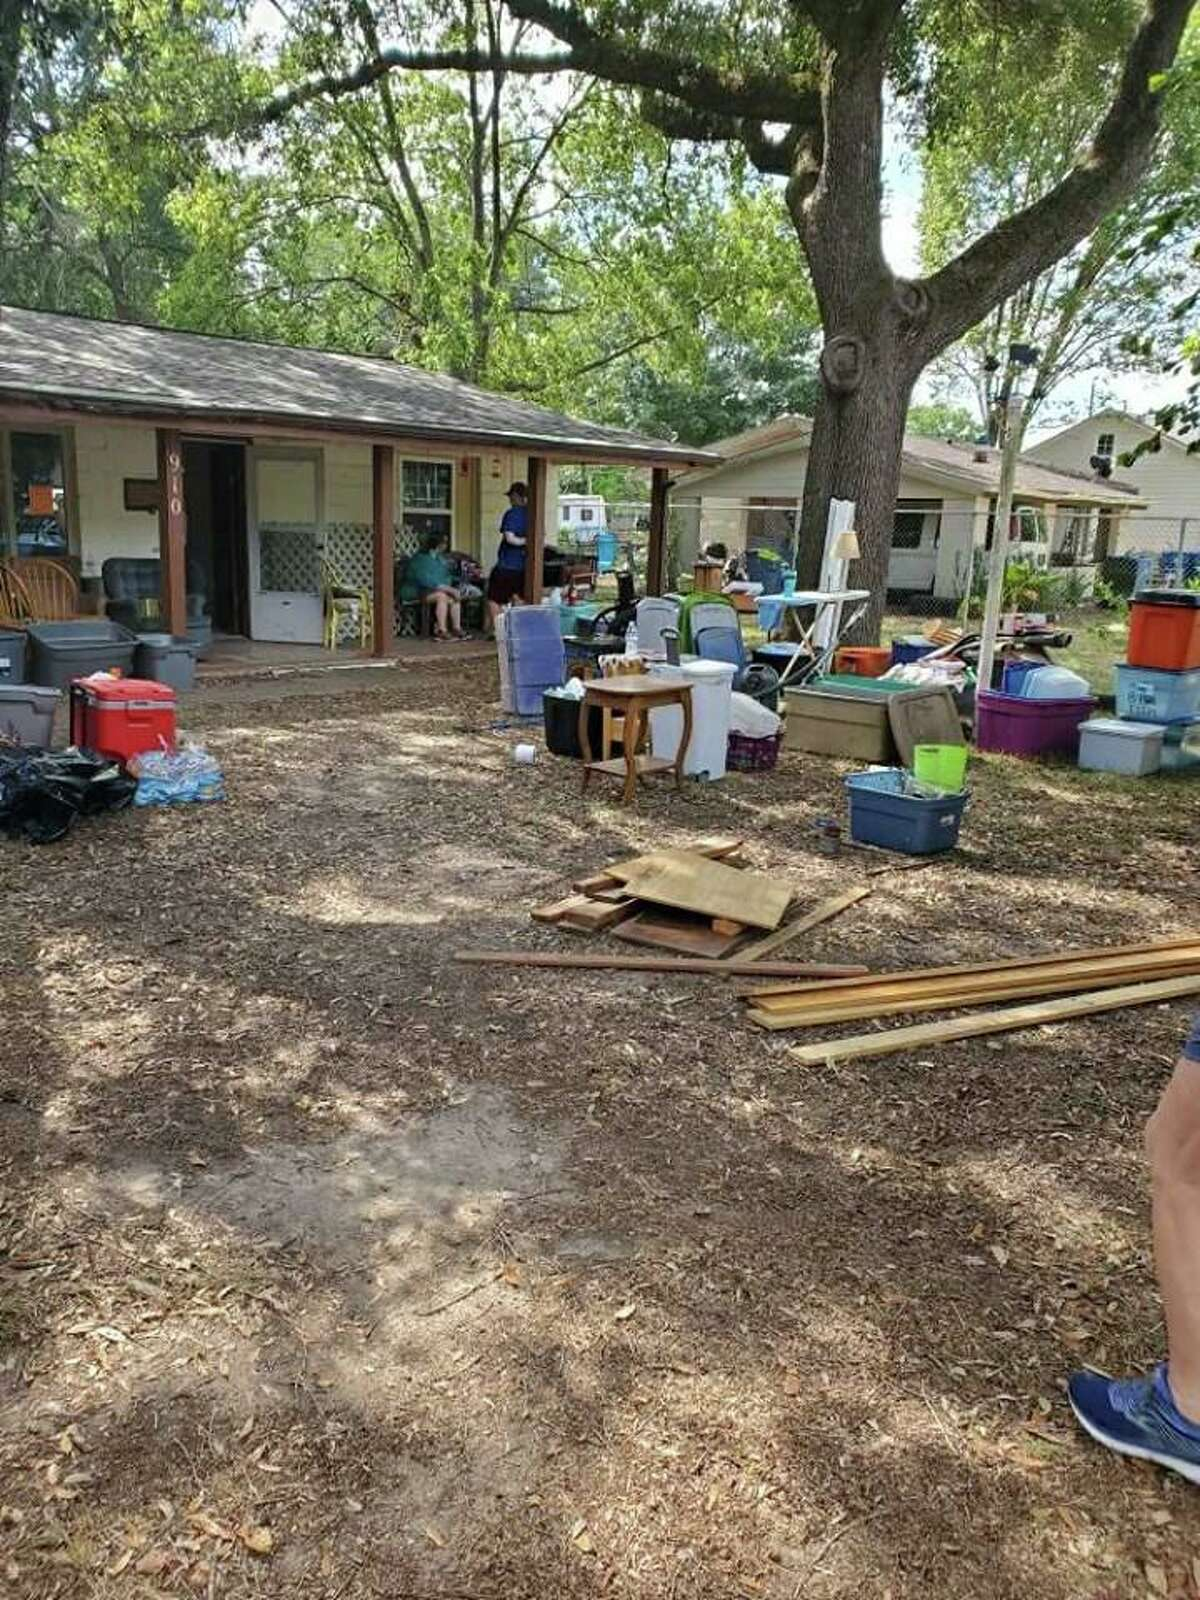 Katy volunteers, businesses and nonprofits join together to make Ann Zanfradino's house inhabitable two years after Hurricane Harvey